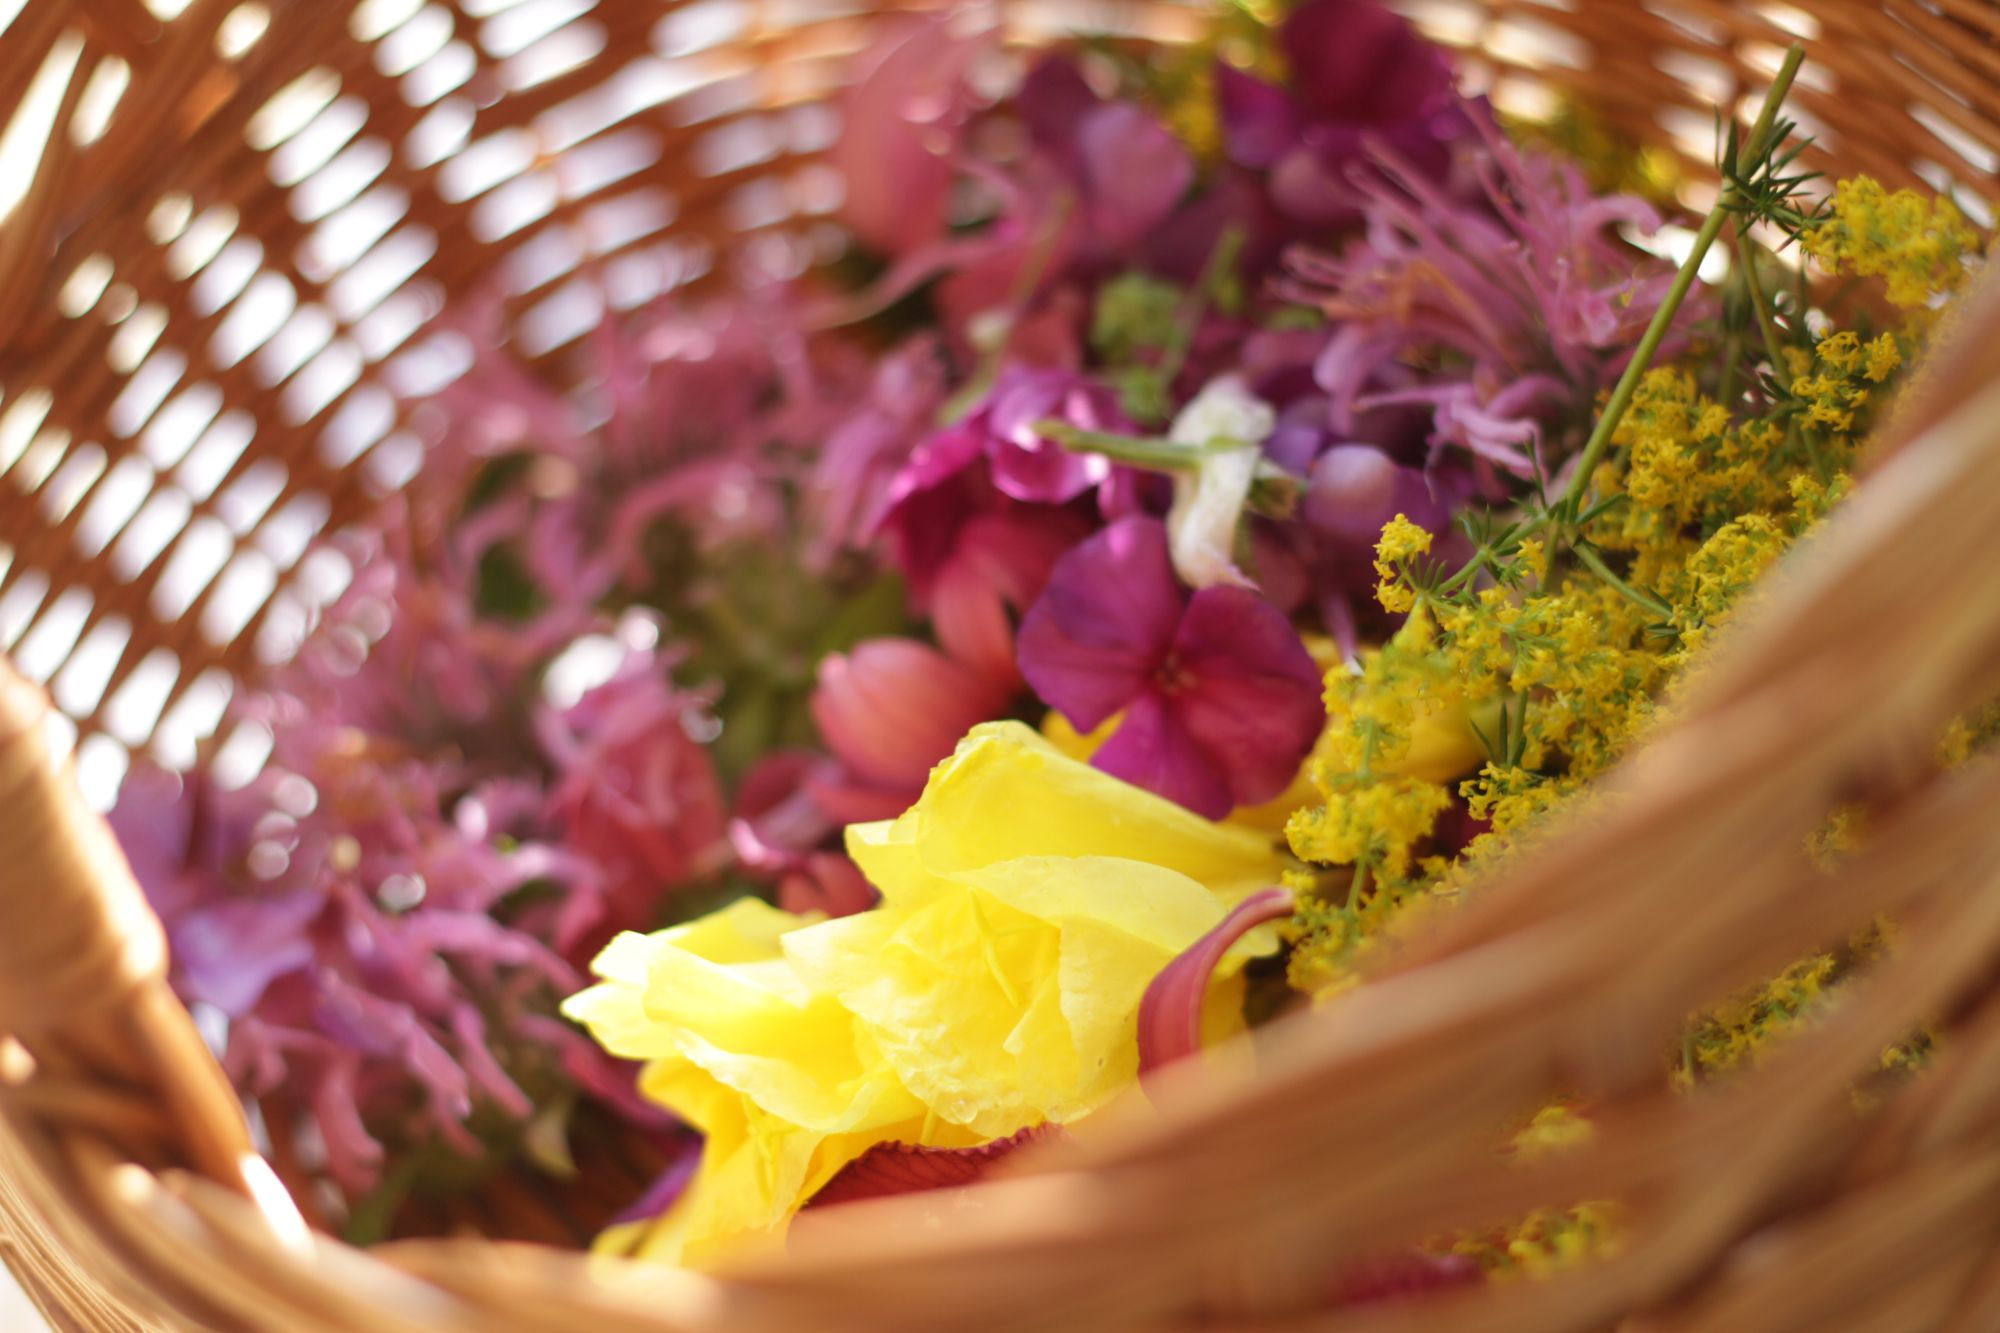 Basket of wild edible flowers